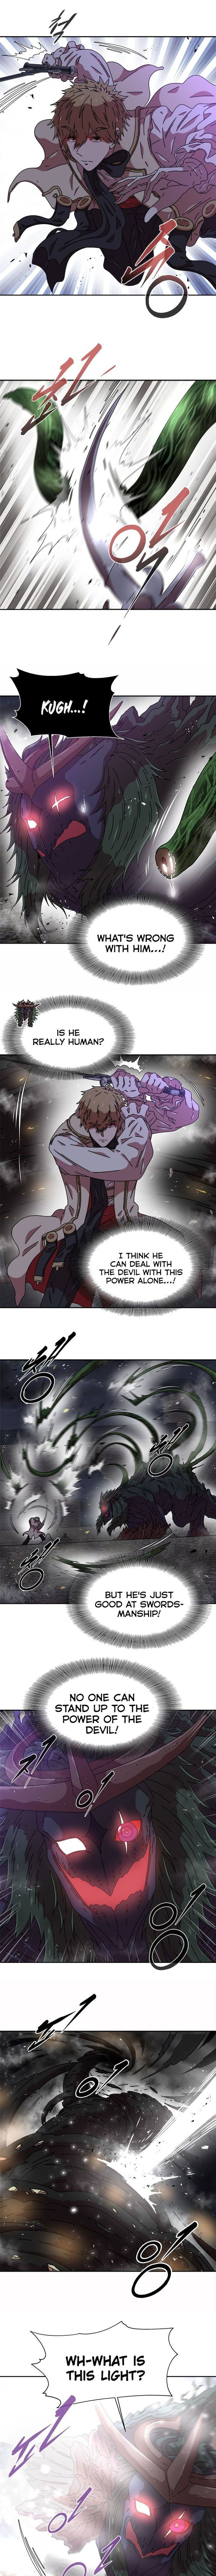 i_was_born_as_the_demon_lords_daughter_56_6